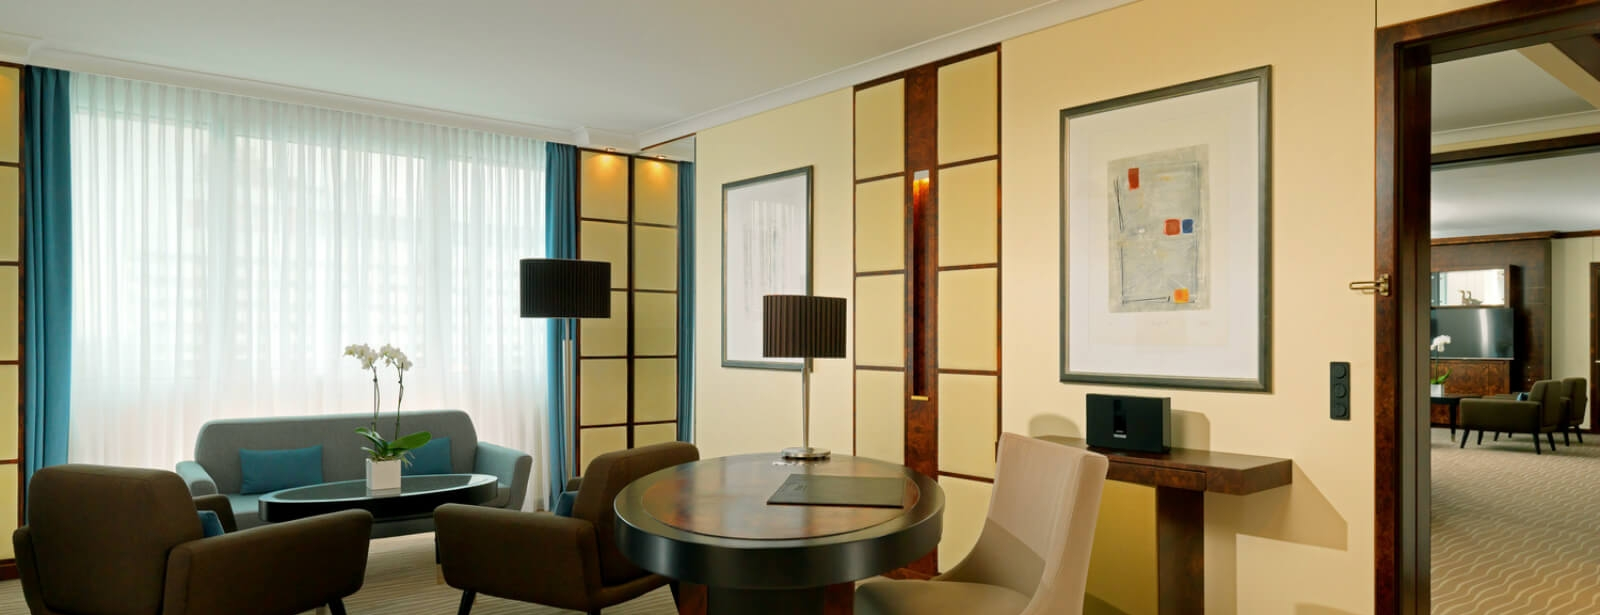 Living Room of the Westin Suite at the Westin Grand Munich